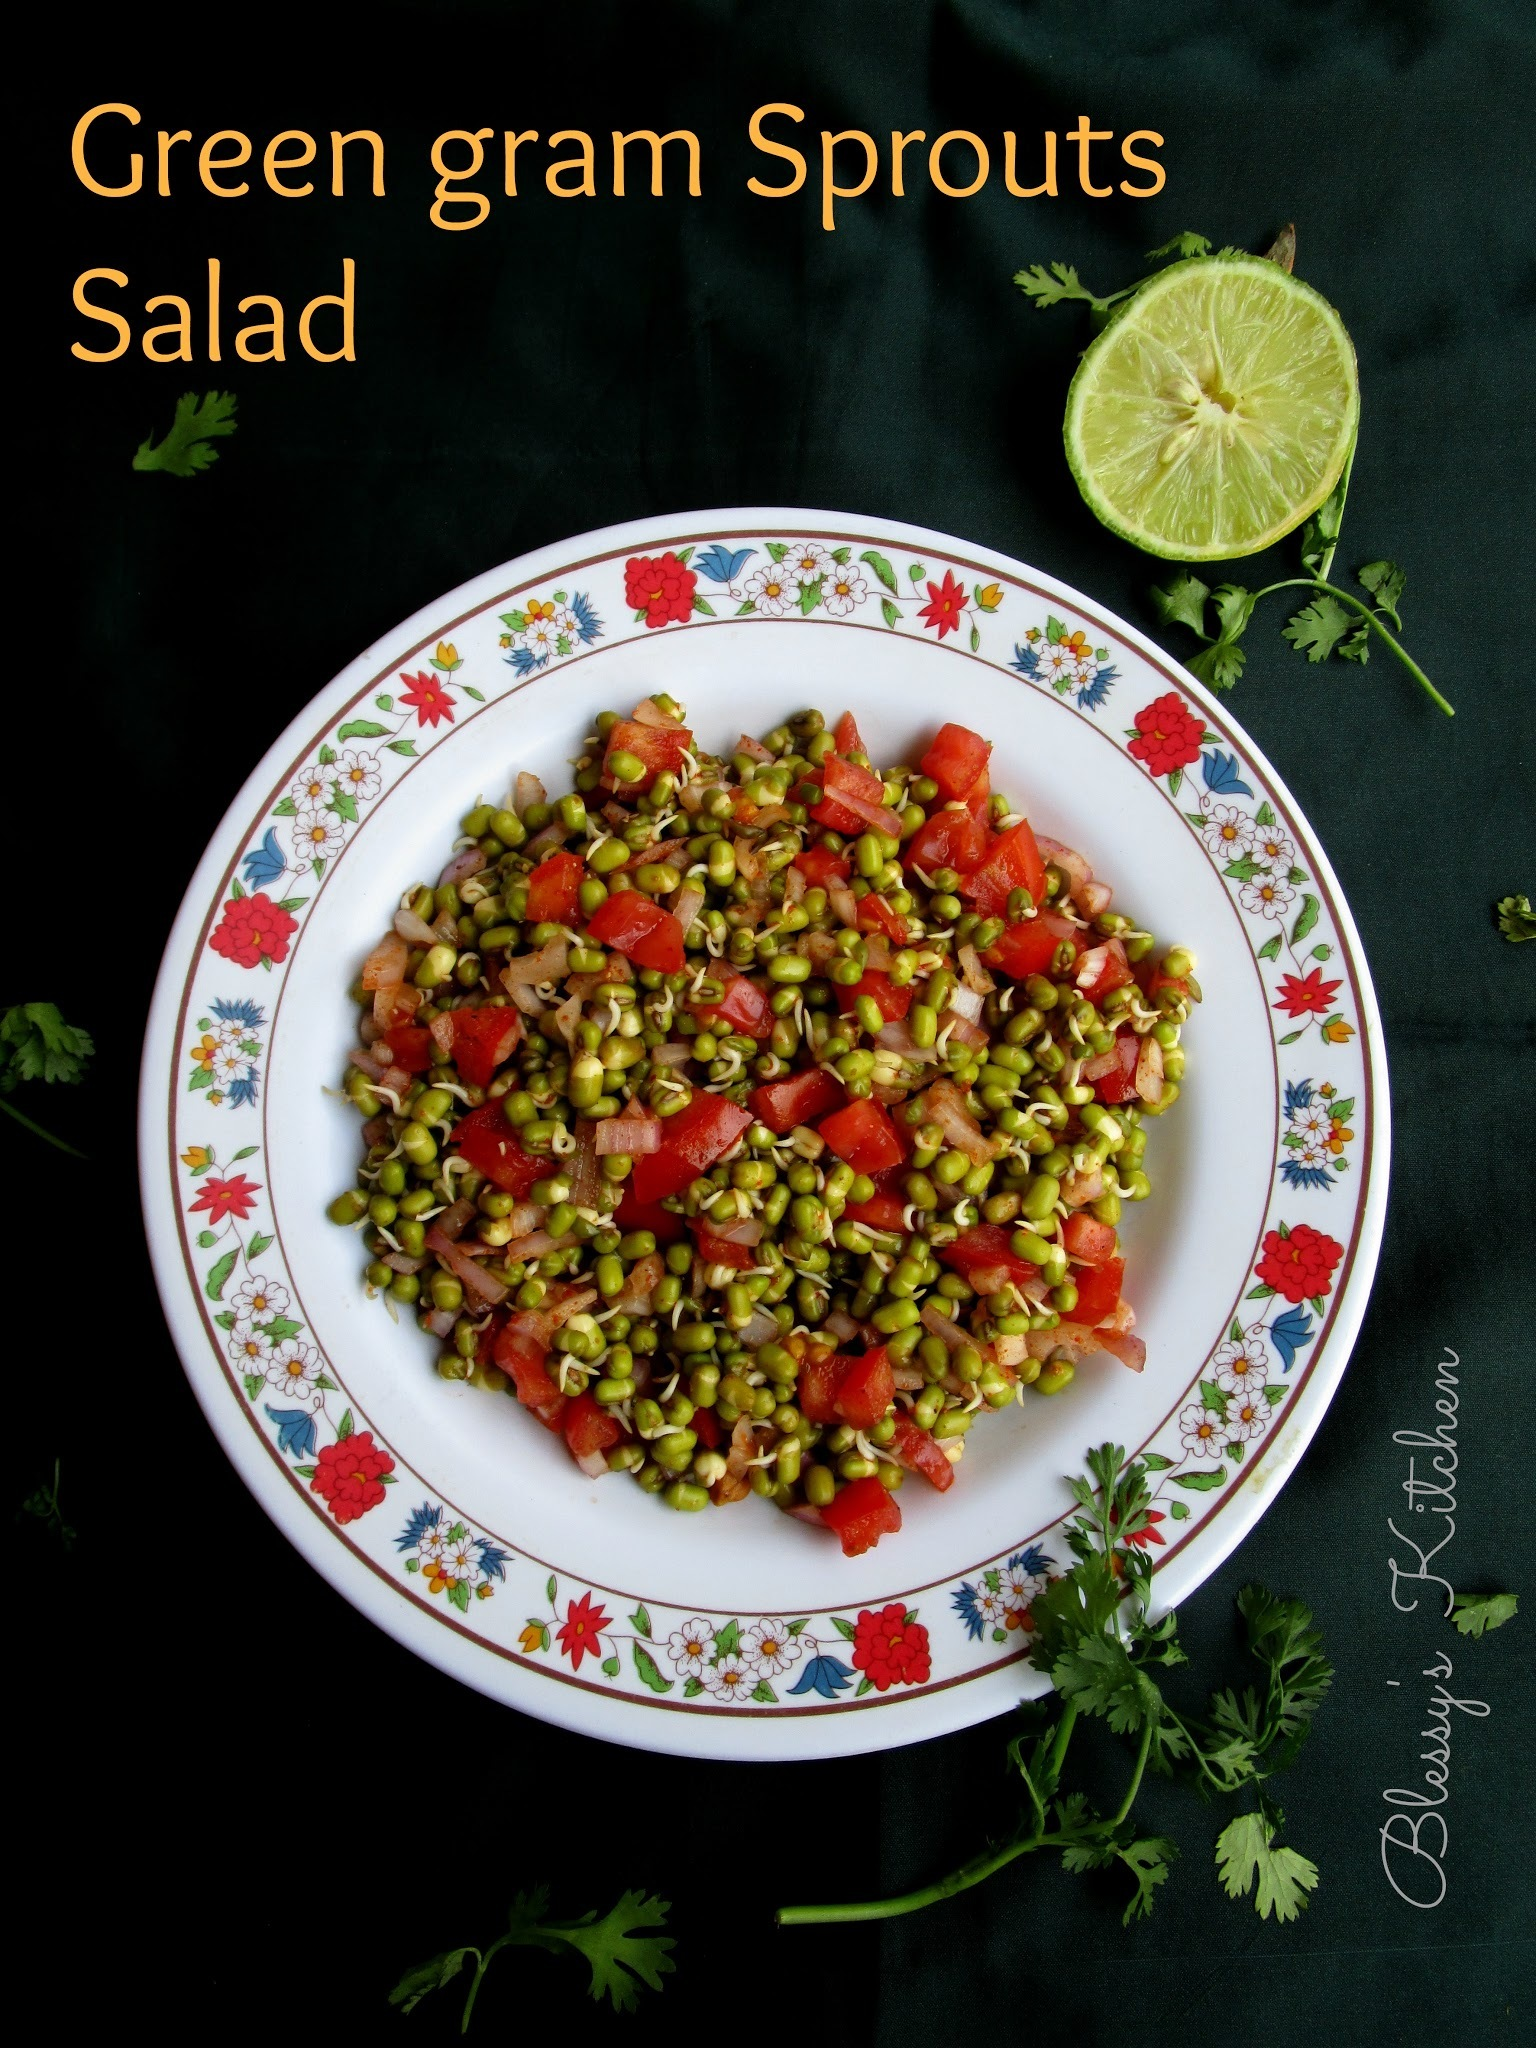 Green gram Sprouts Salad/ Mung Sprouts Salad/ Healthy Green gram Sprouts Salad/ Chatpati Mung Salad